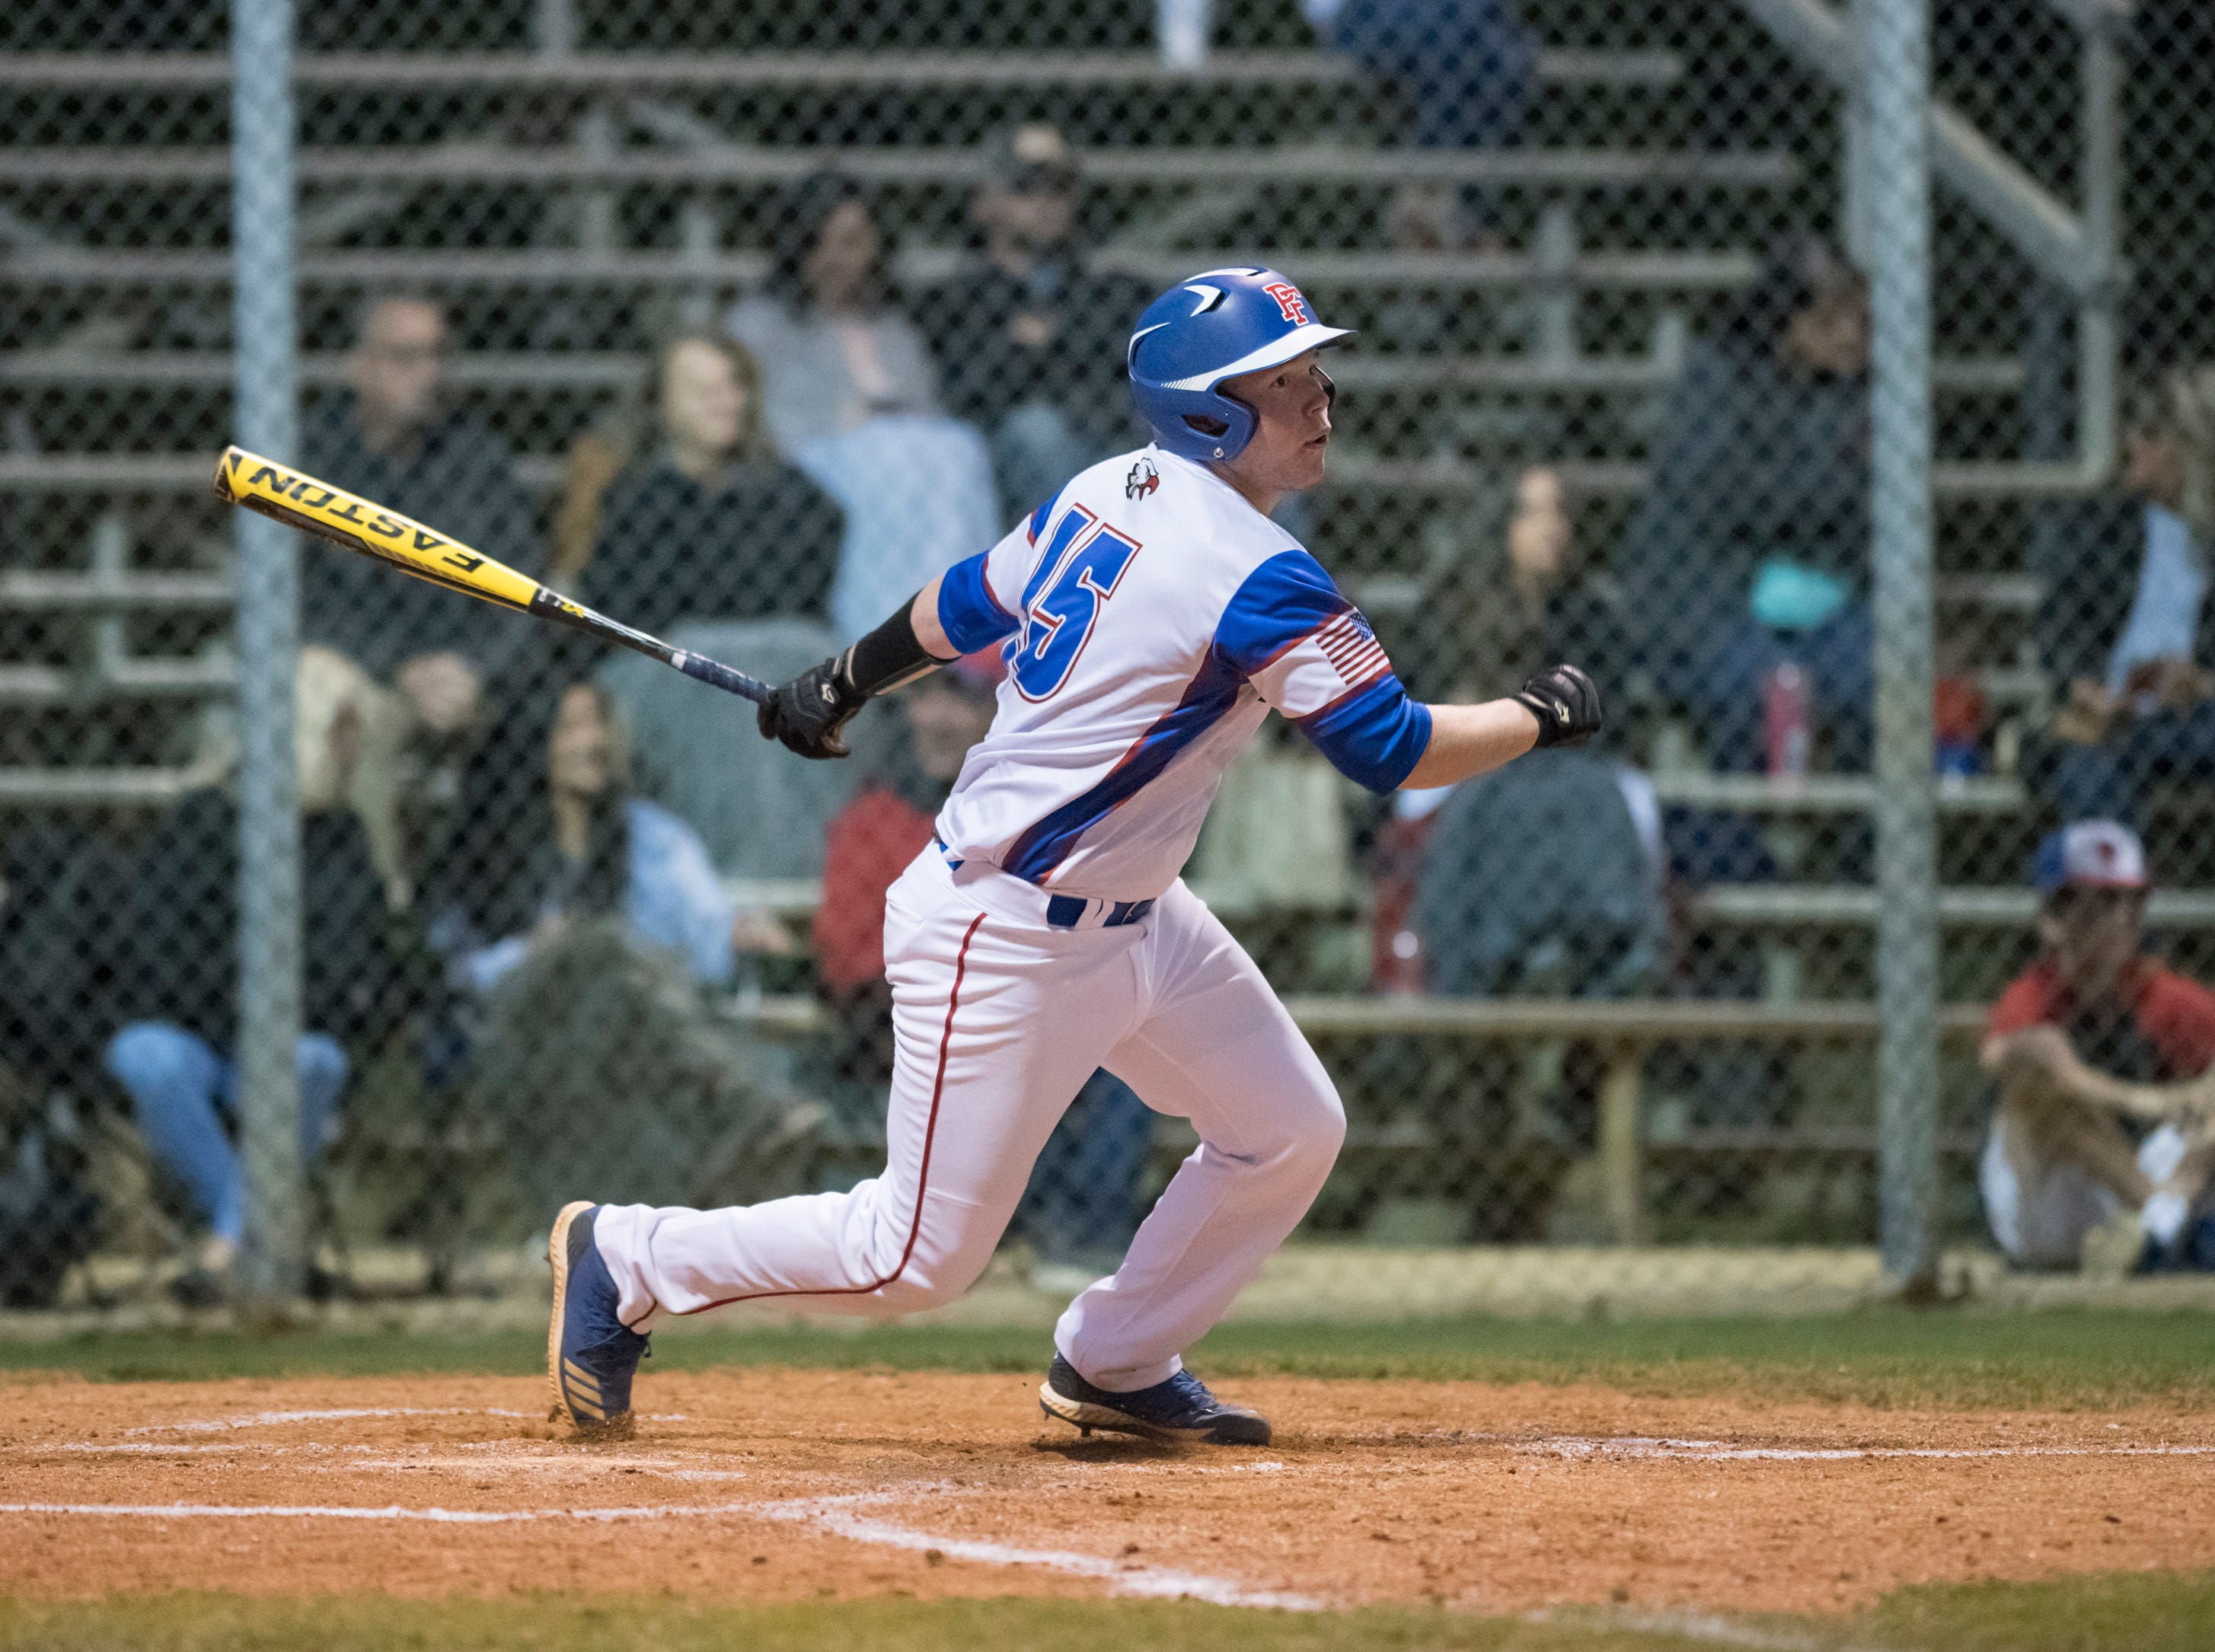 Jason Roberts (15) follows his shot that fell in for a single during the Christian Educational Consortium vs Pine Forest baseball game at Pine Forest High School in Pensacola on Wednesday, April 3, 2019.